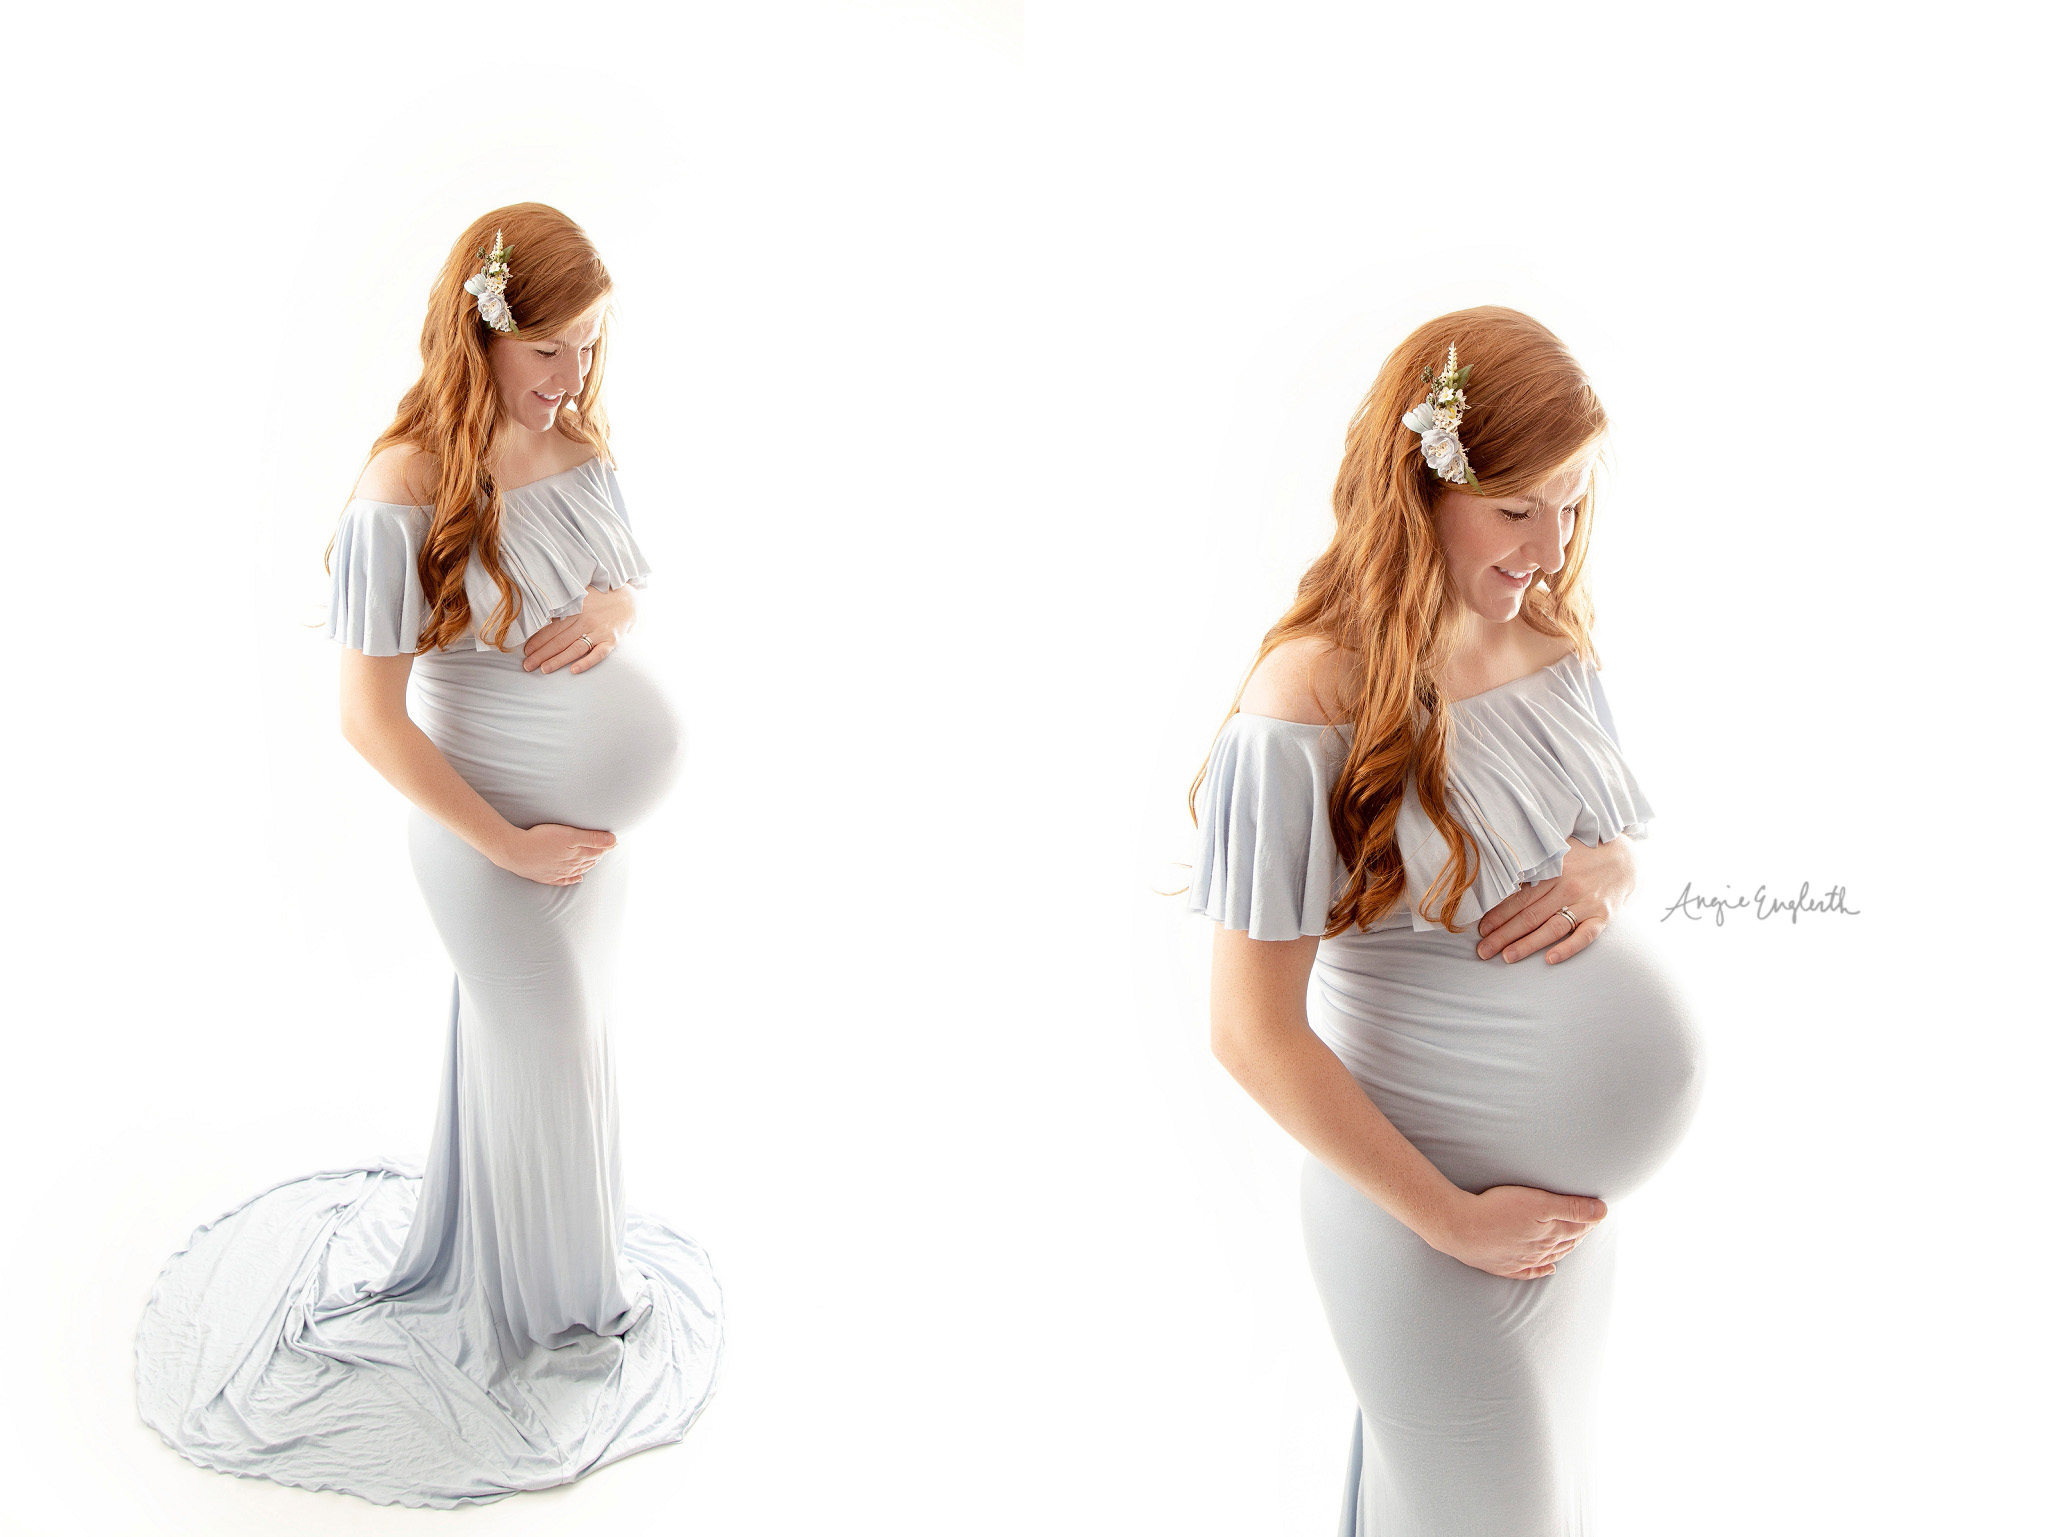 lancaster_maternity_photographer_angie_englerth_central_pa_b061.jpg